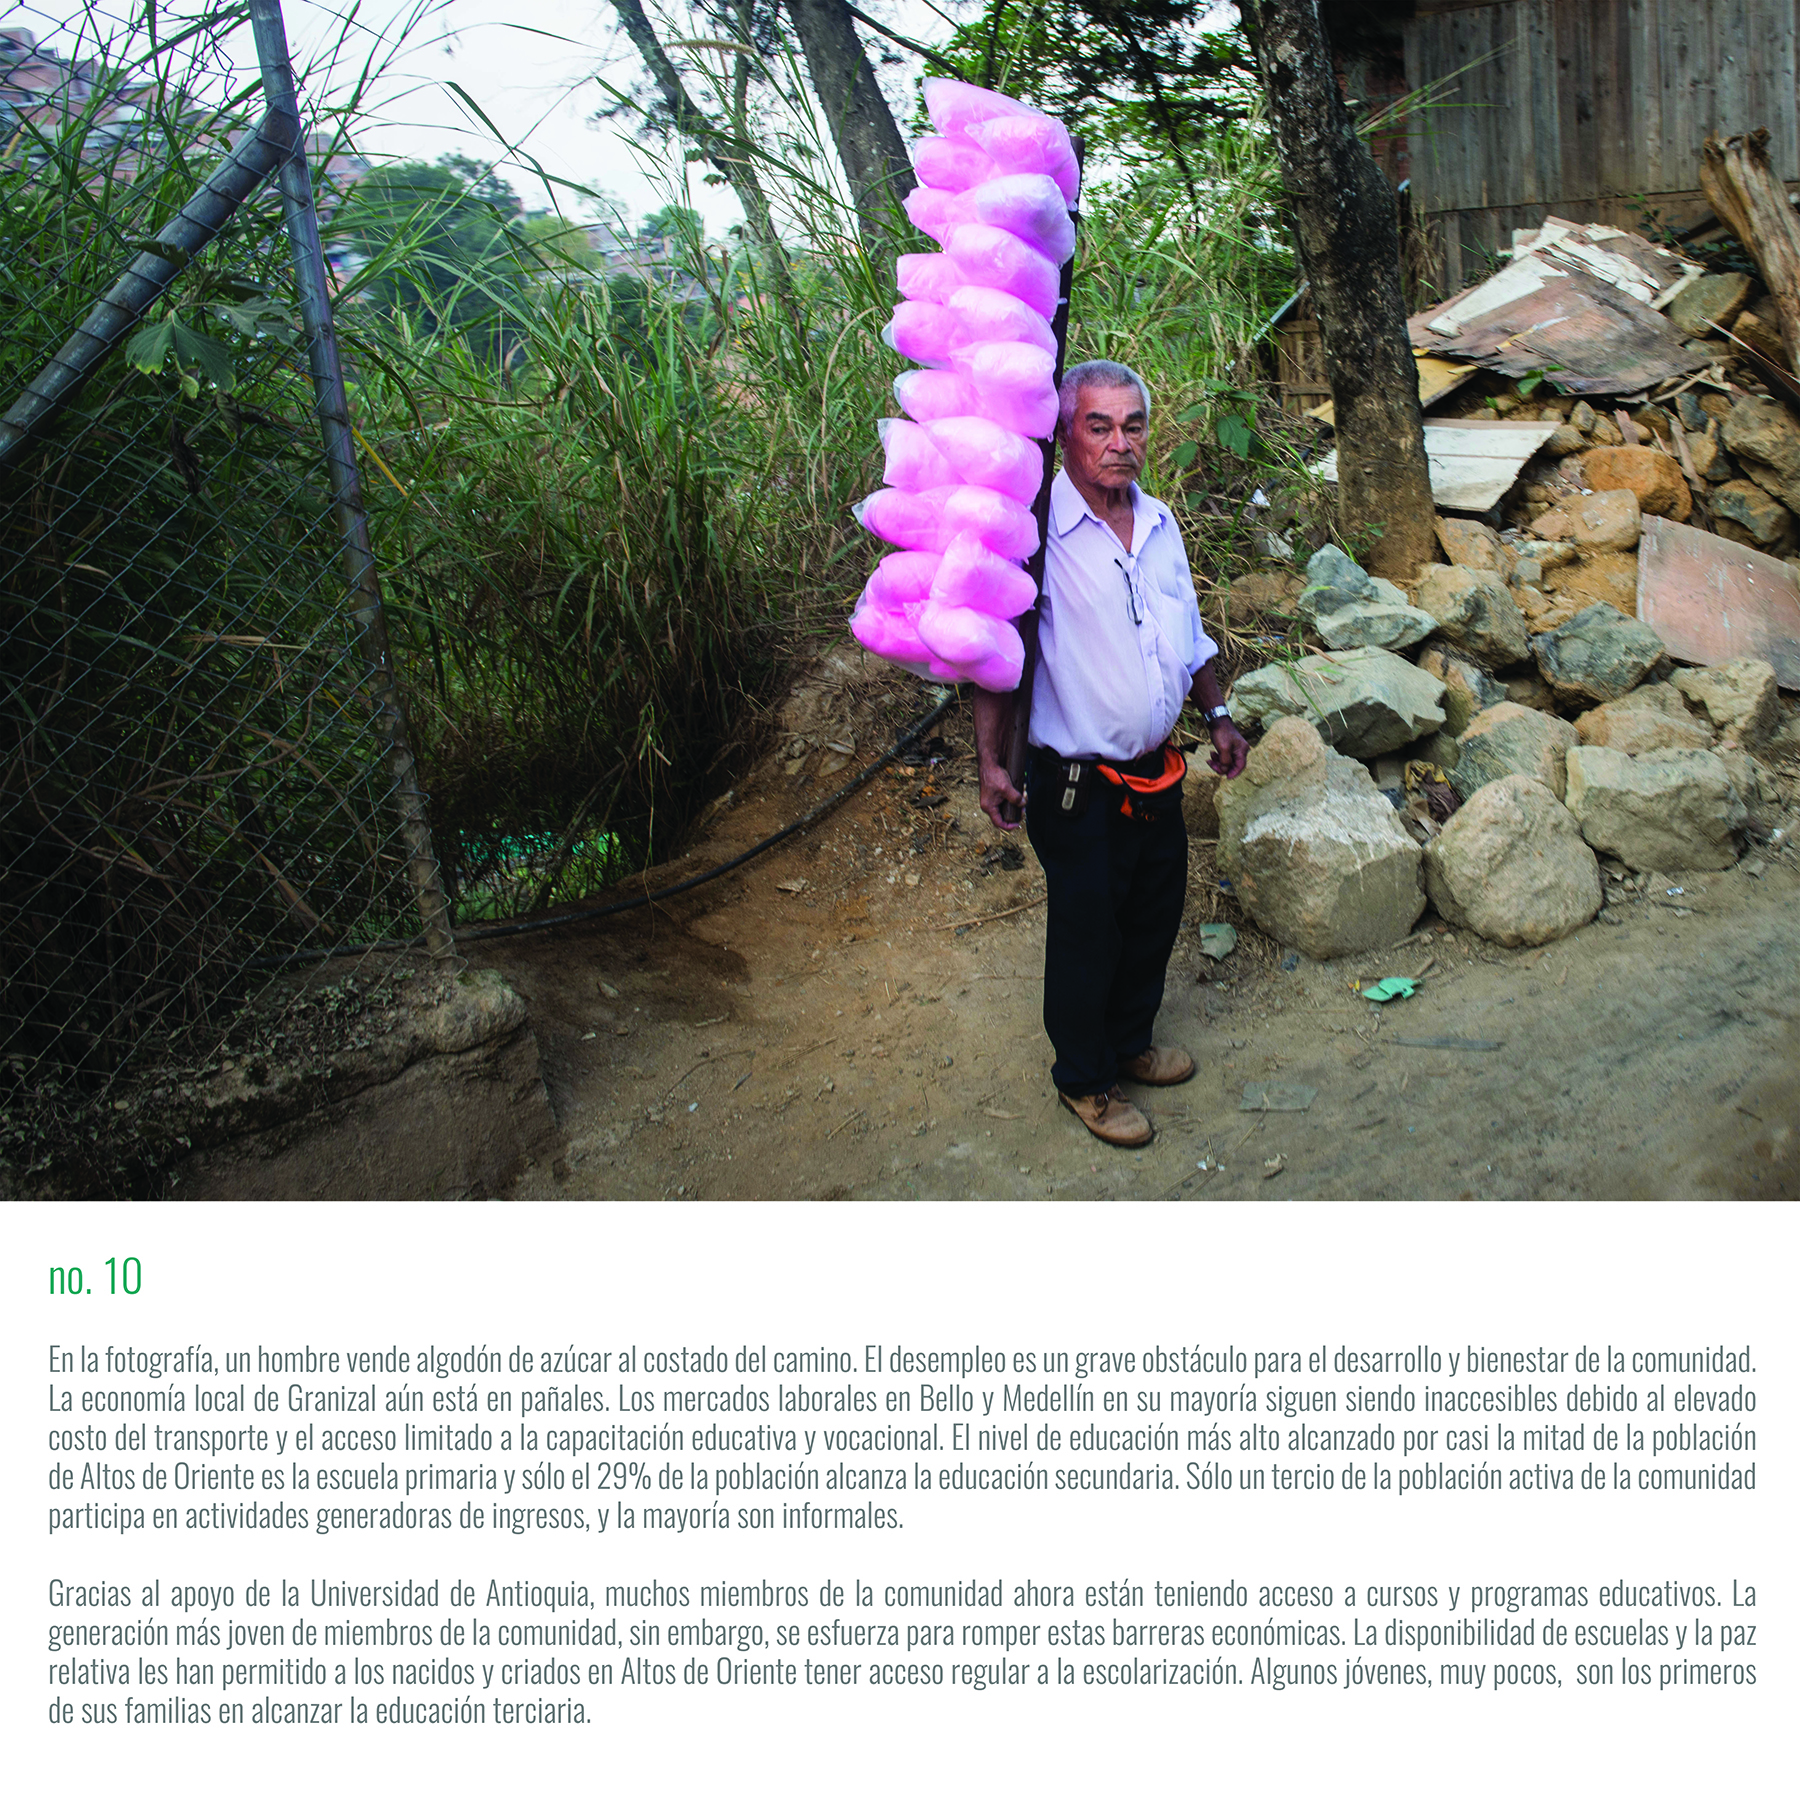 A man sells cotton candy on the roadside. Unemployment is a severe impediment to the community's development and well-being. Job markets in Bello and Medellin remain mostly inaccessible due to high transportation costs and limited access to education and vocational training.